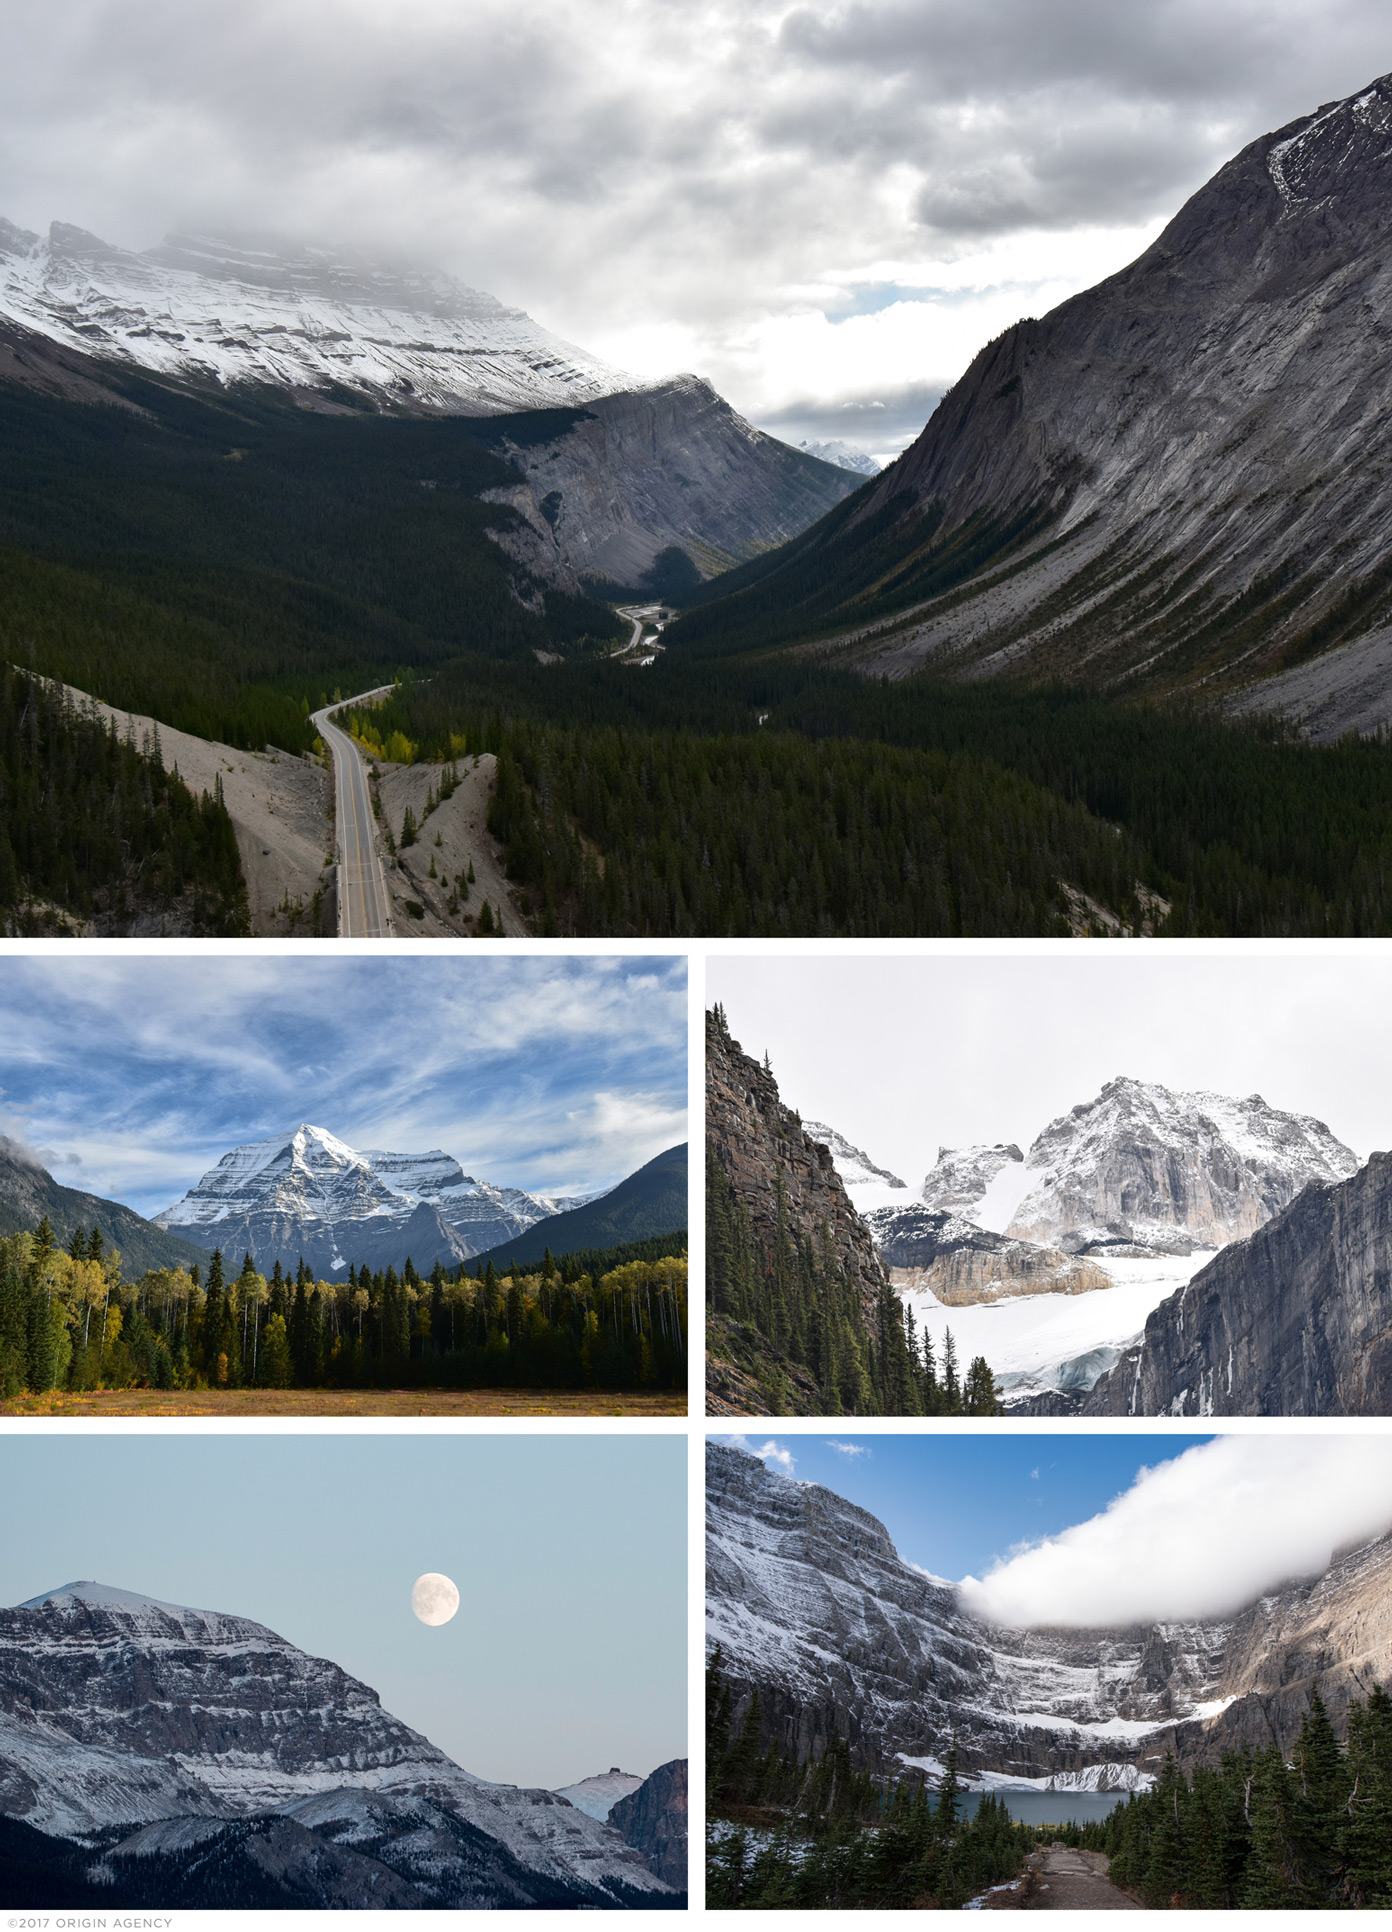 origin-agency-canada-mountains.jpg